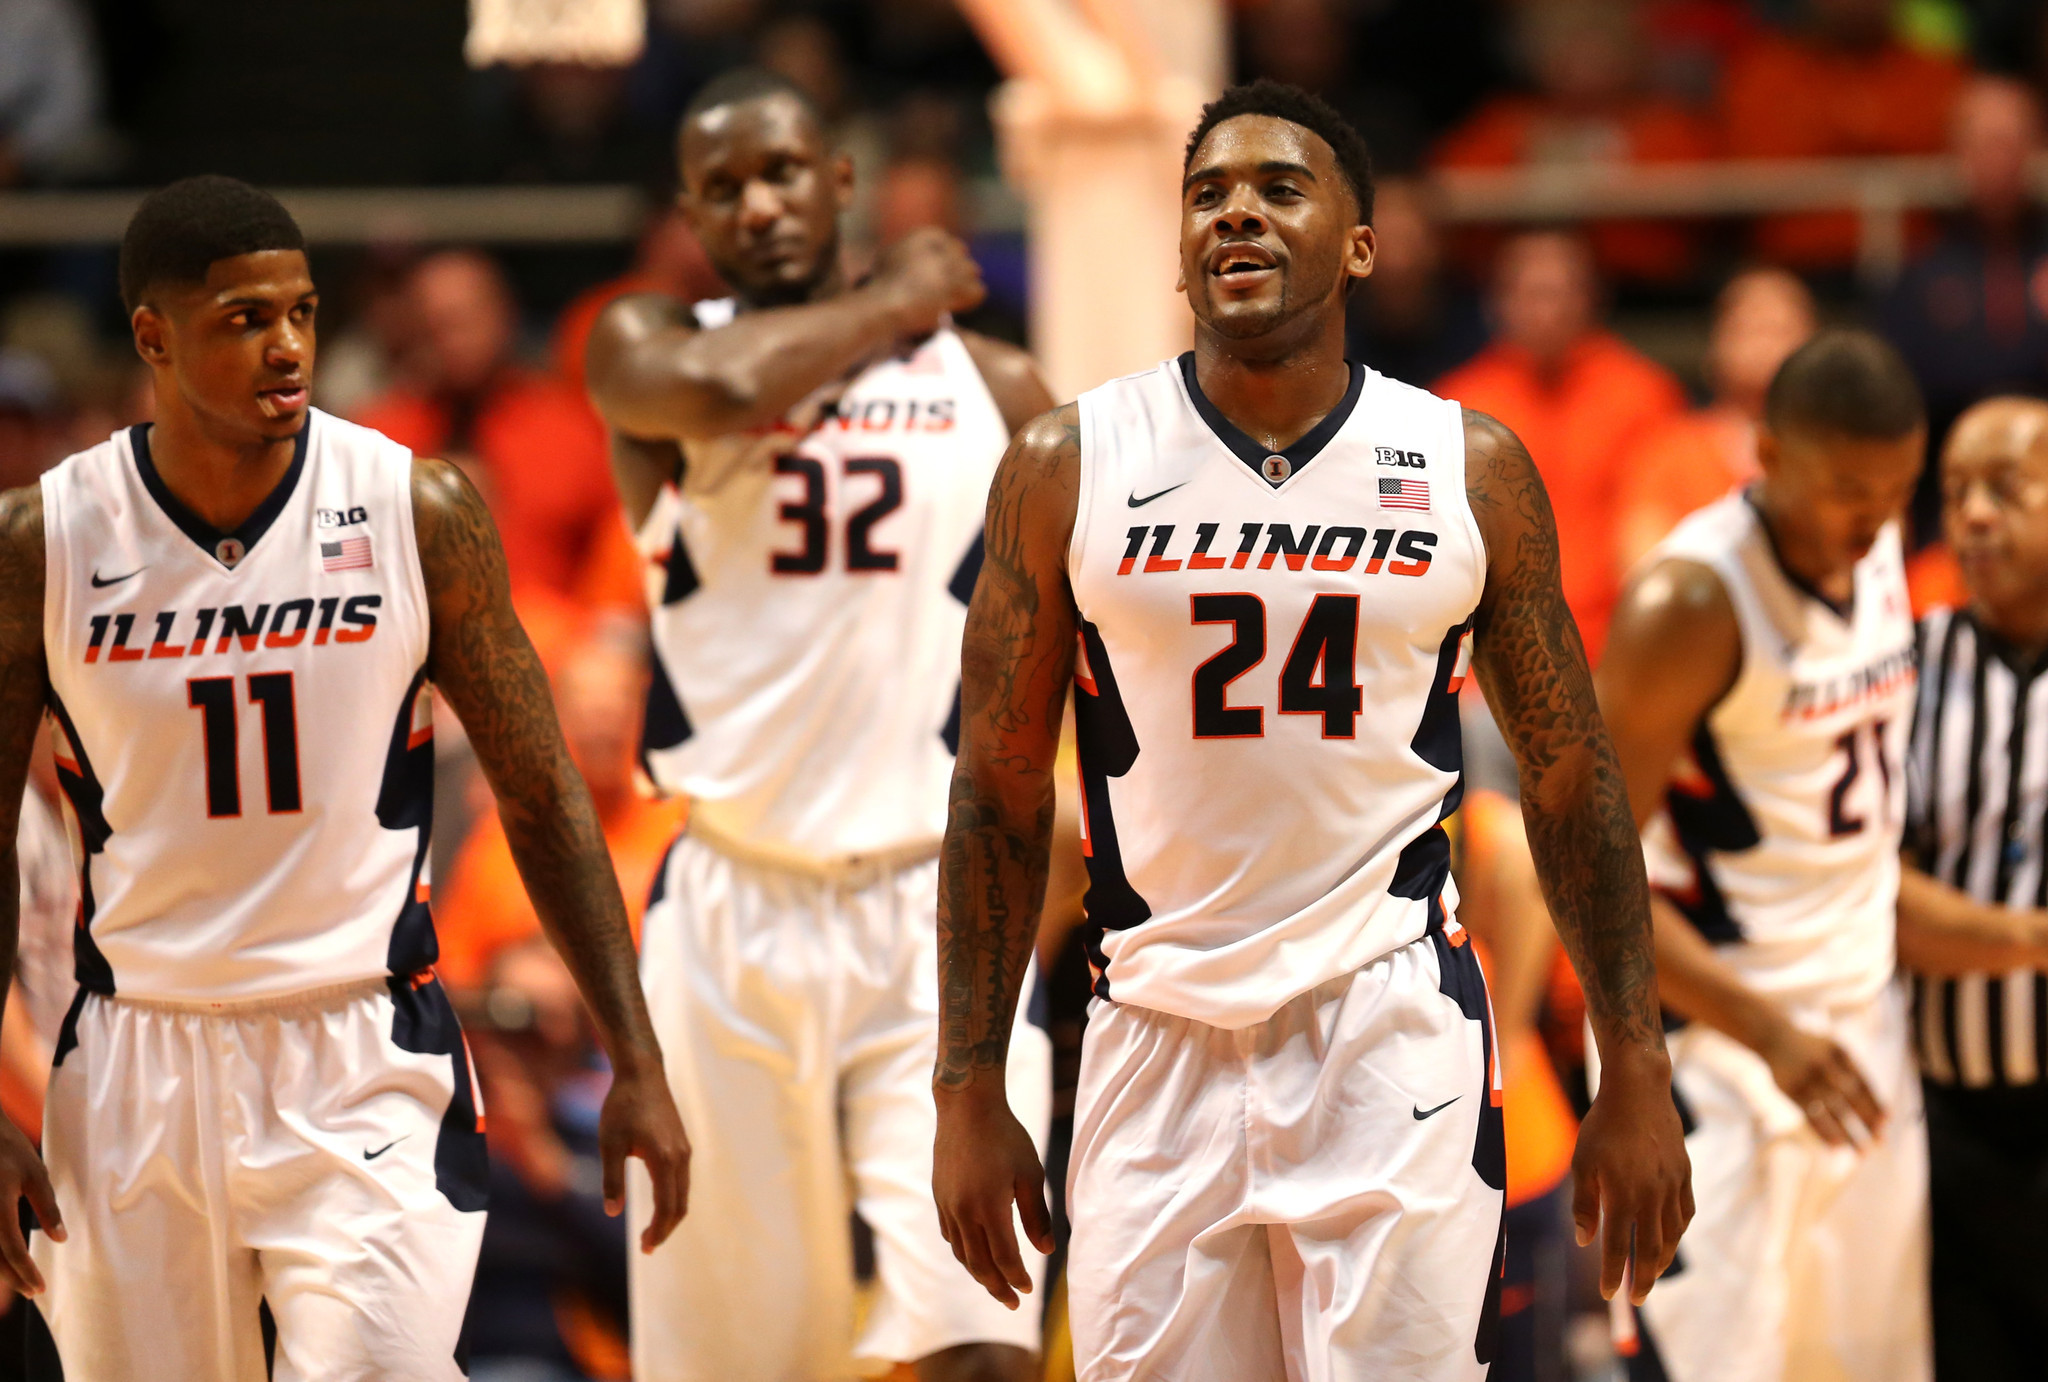 Illini guards Rayvonte Rice, Aaron Cosby suspended indefinitely